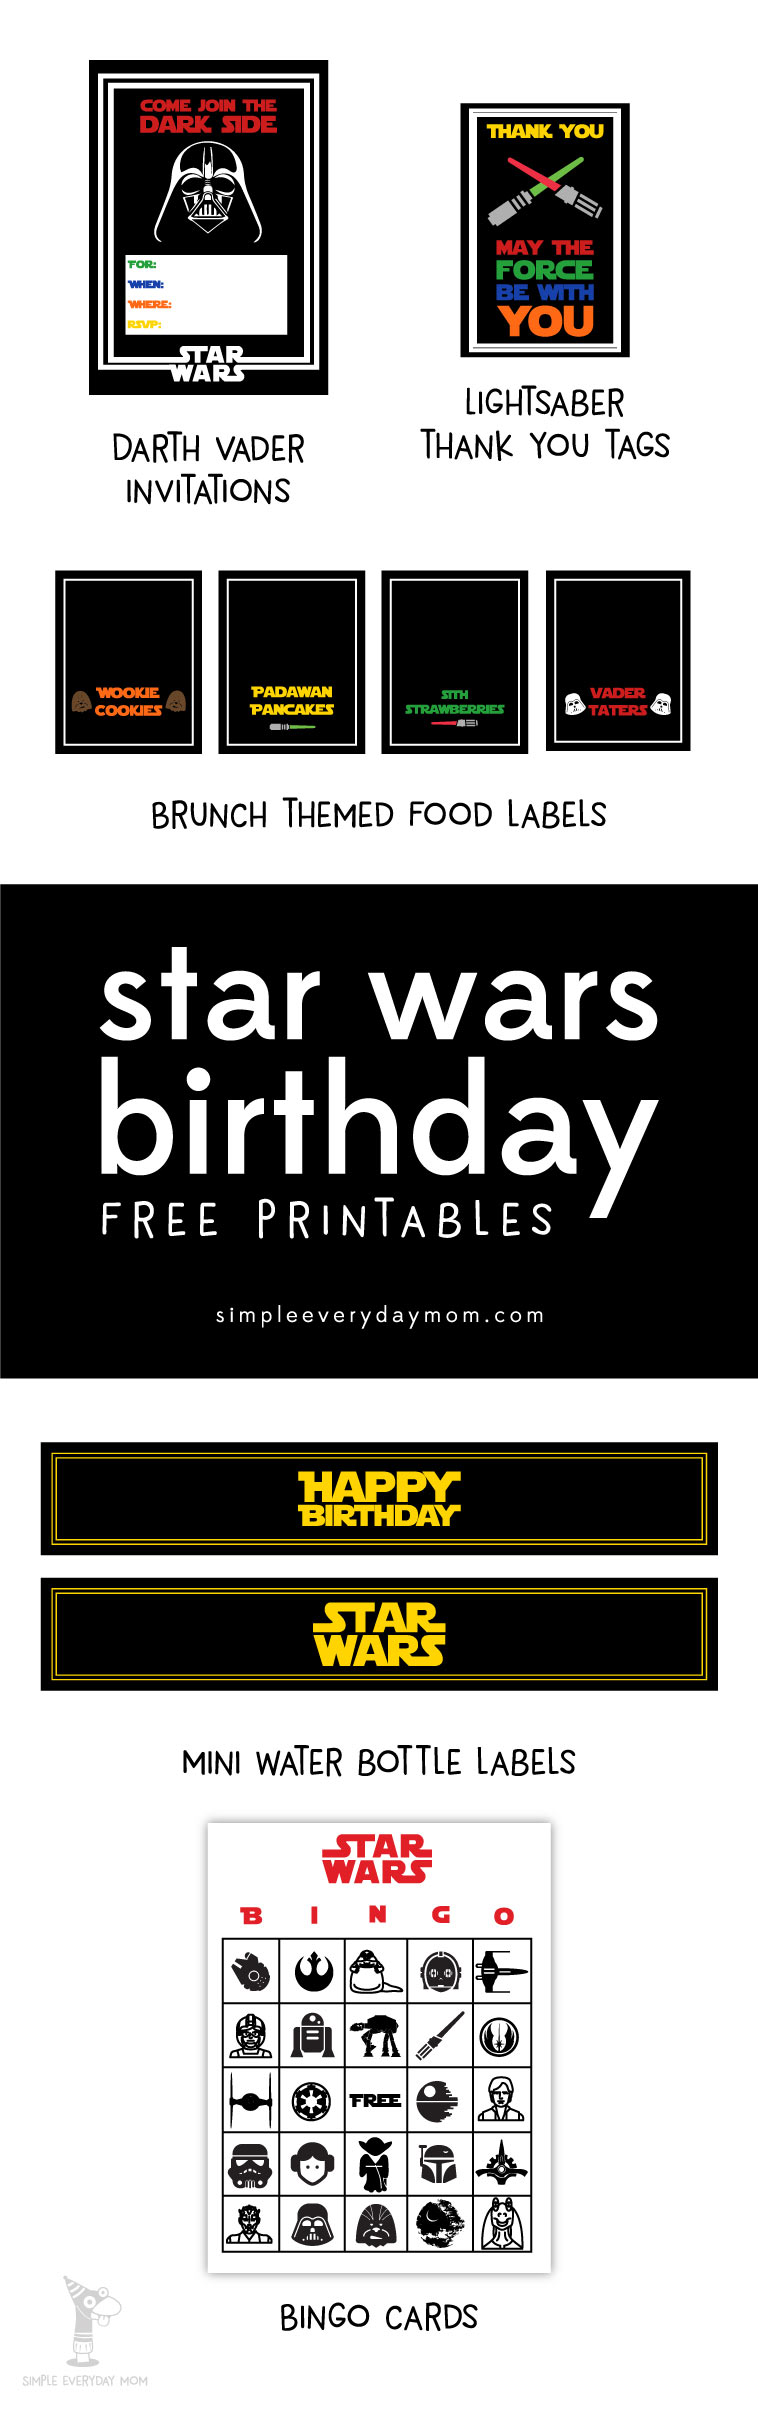 Inside Throw An Amazing Birthday Party For Your Child With The Help Of These Star Wars Printables